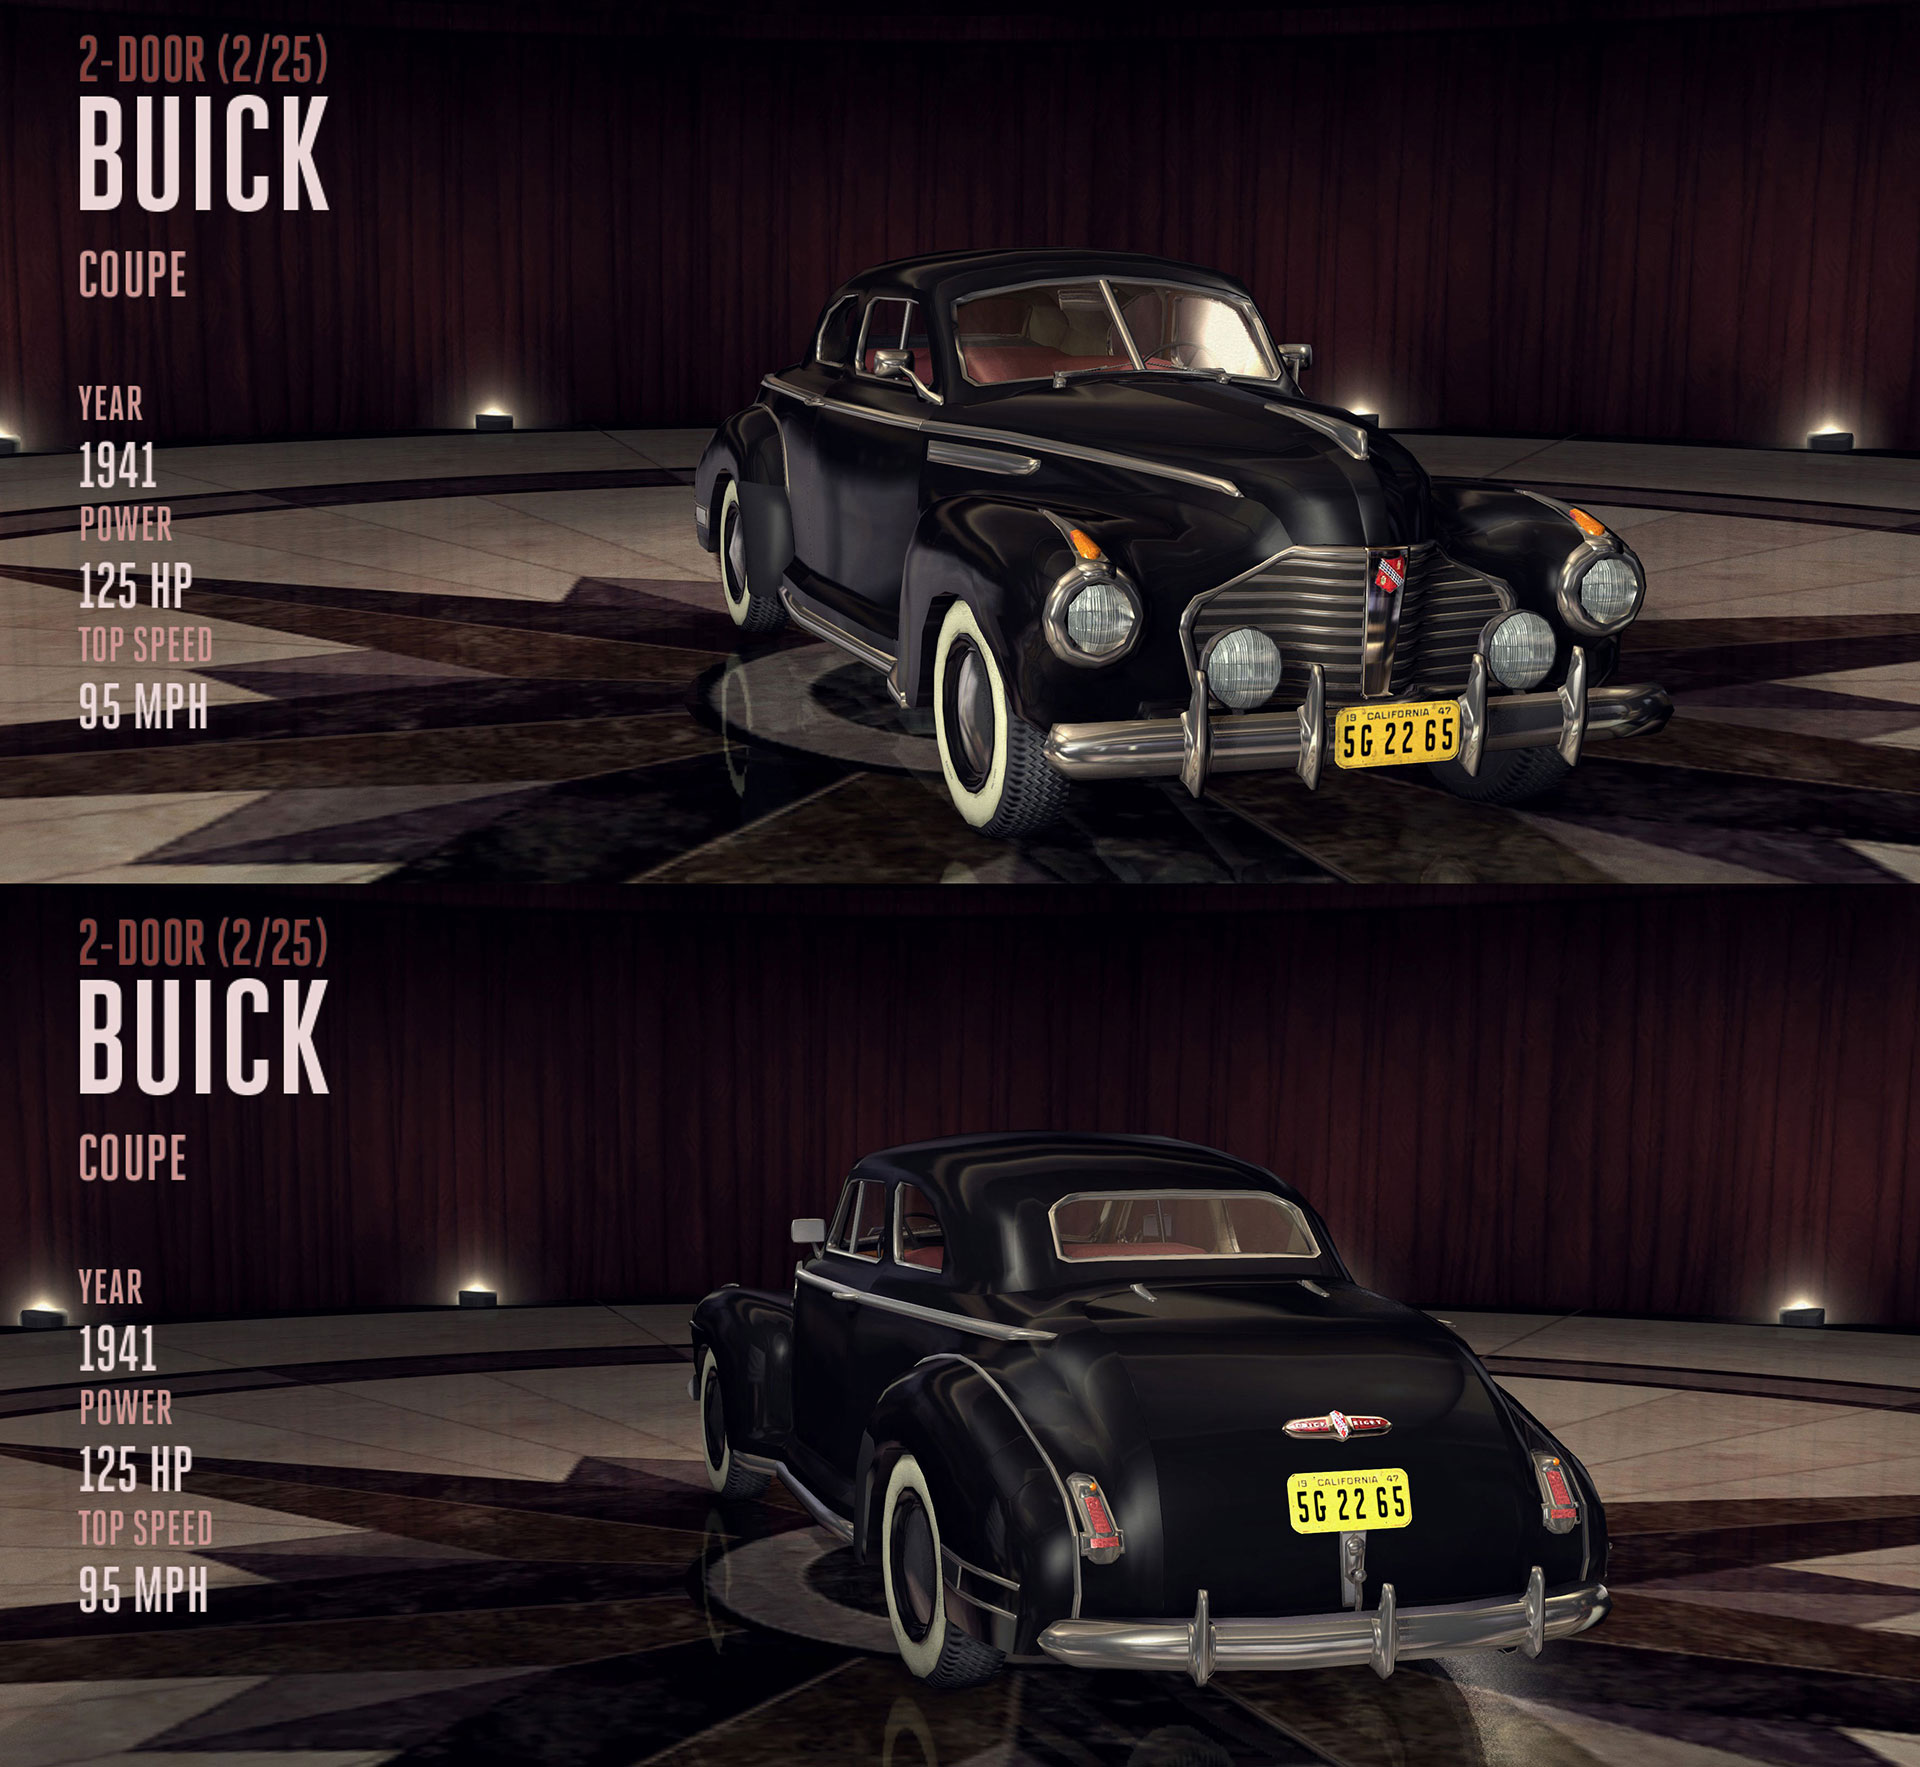 Fichier:1941-buick-coupe.jpg